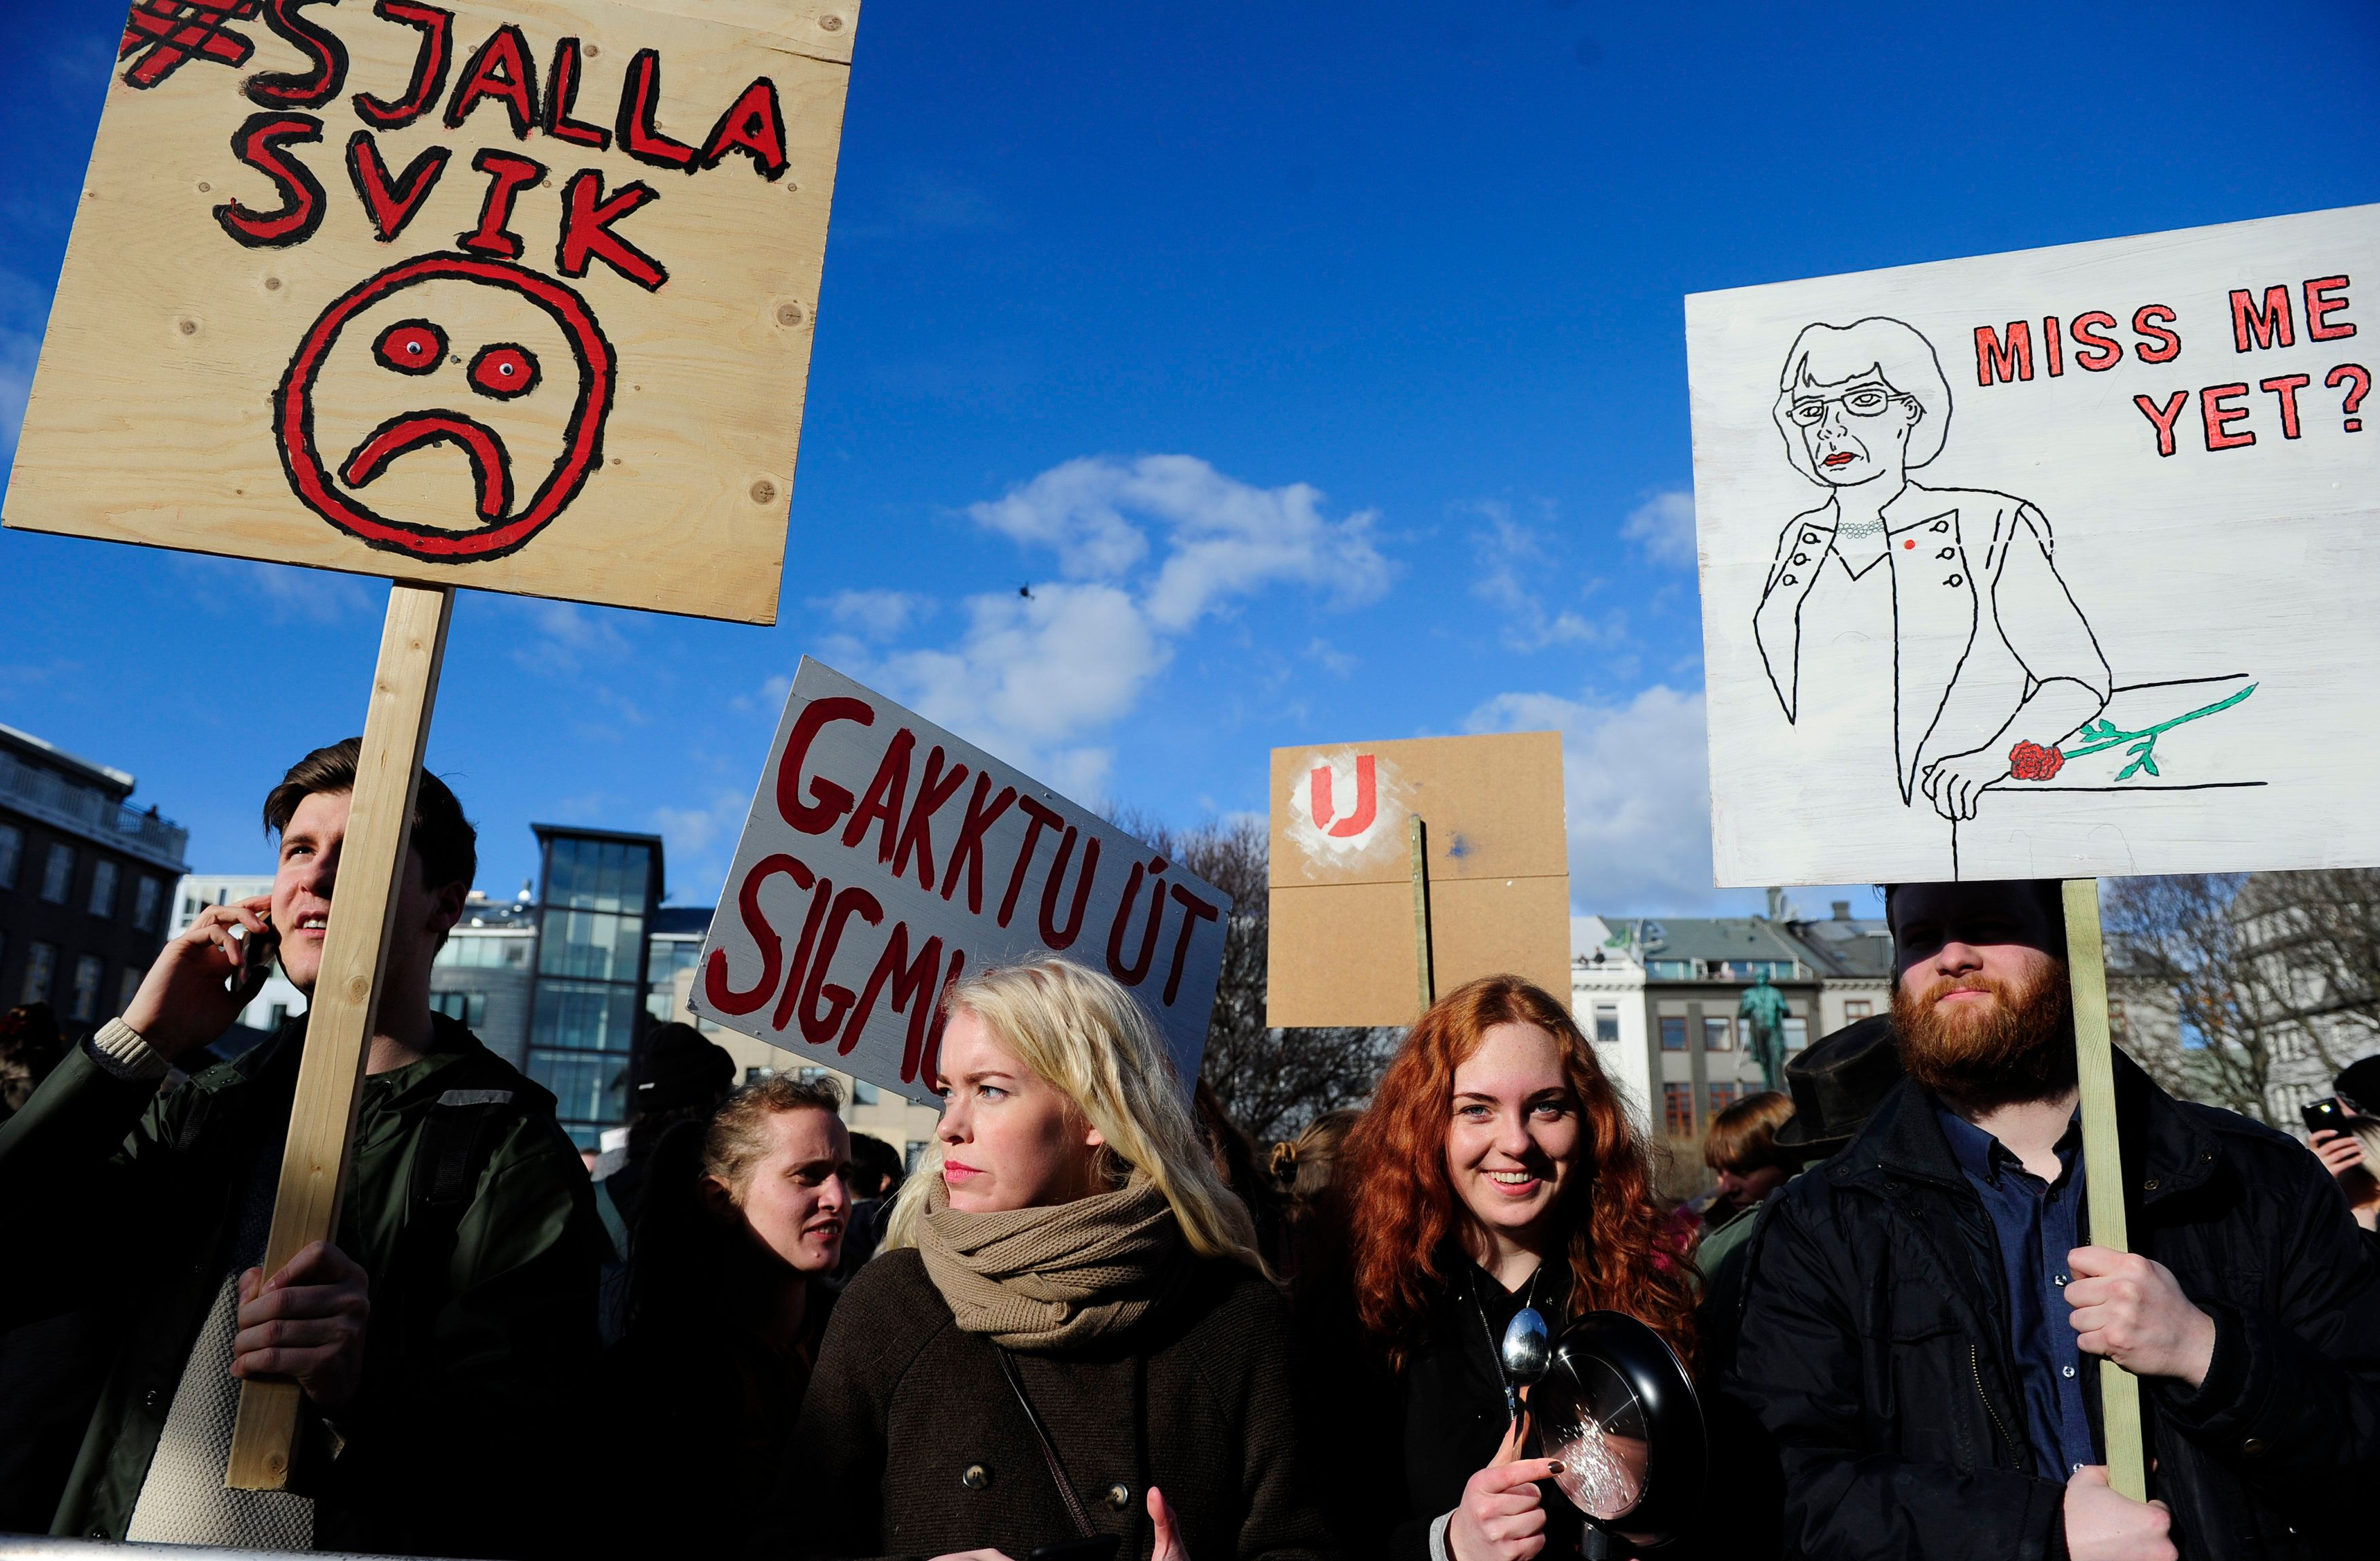 People demonstrate against Iceland's Prime Minister Sigmundur Gunnlaugsson in Reykjavik, Iceland on April 4, 2016 after a lea